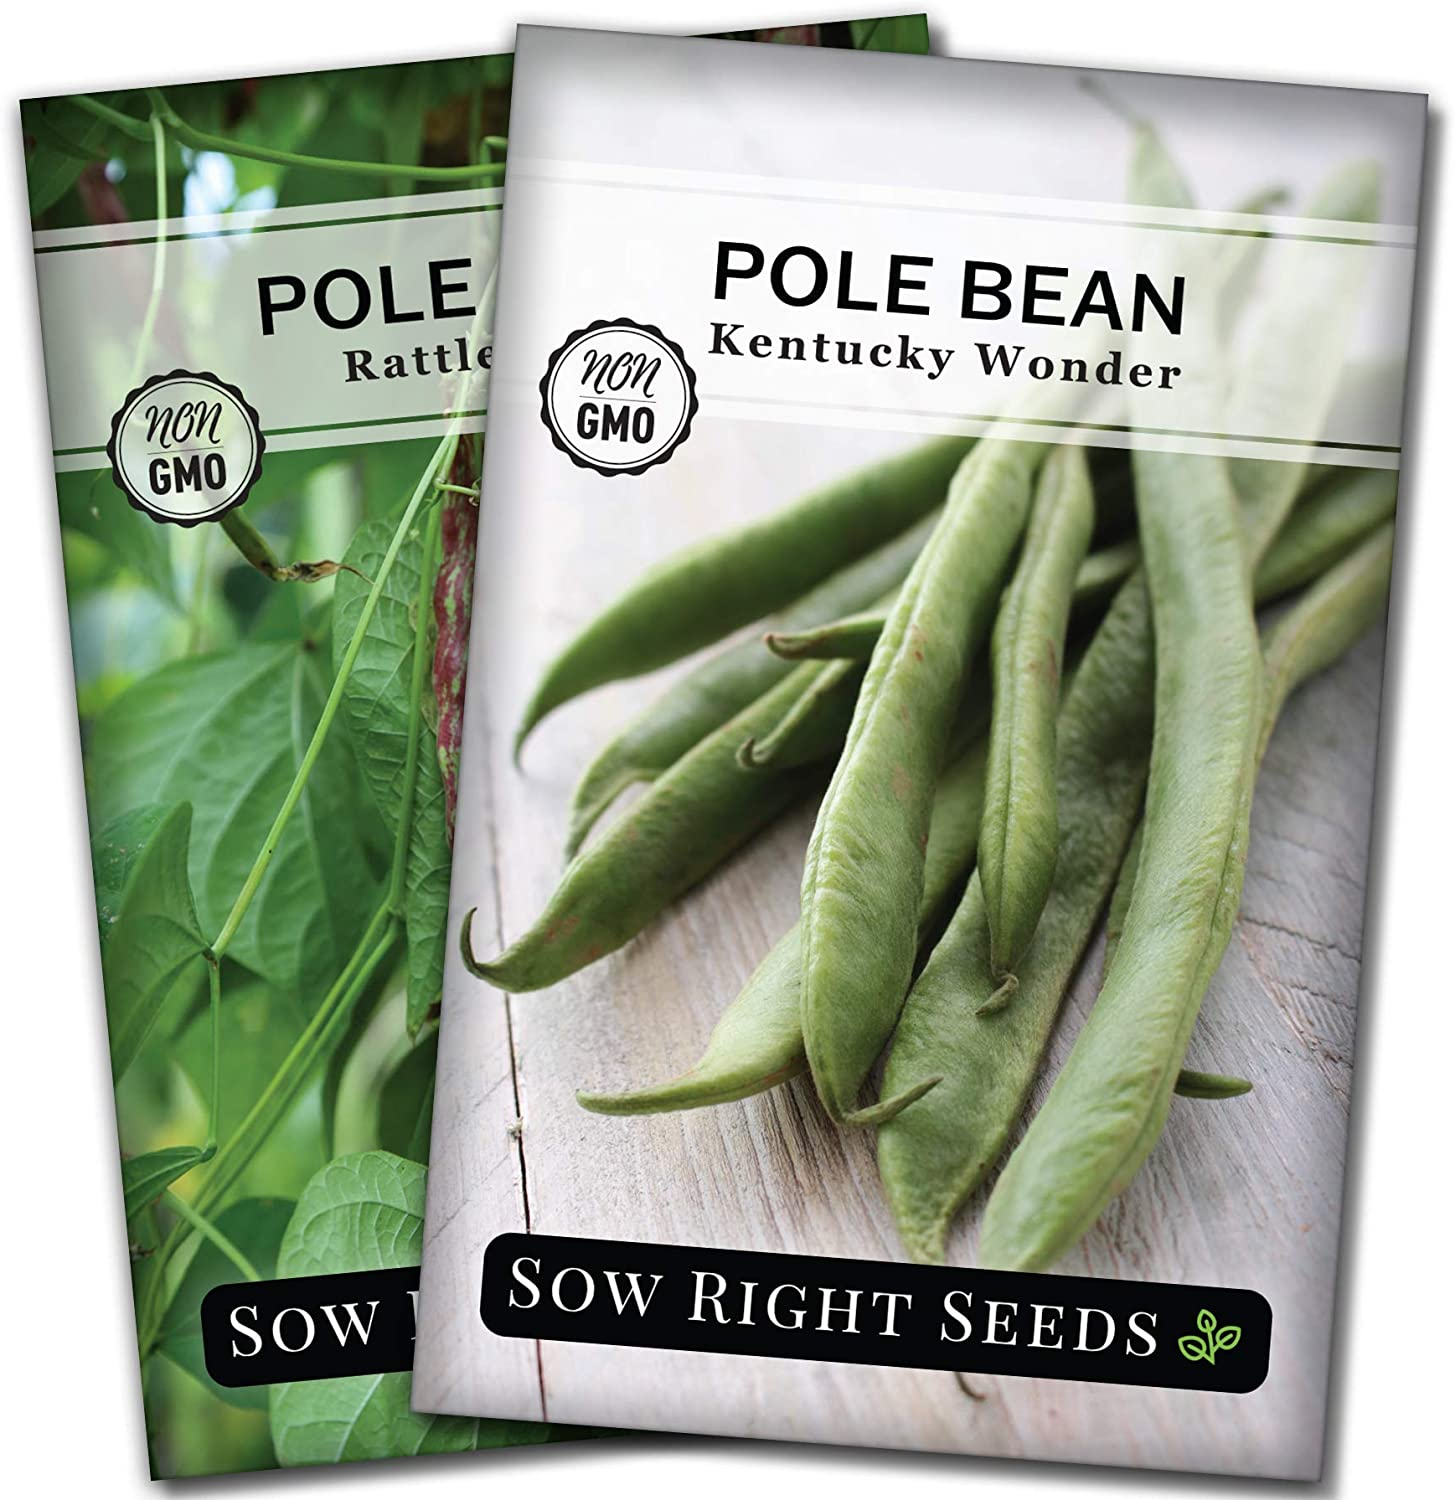 Sow Right Seeds - Pole Bean Seed Collection for Planting - Individual Packets Kentucky Wonder and Rattlesnake Pole Bean, Non-GMO Heirloom Seeds to Plant an Outdoor Home Vegetable Garden